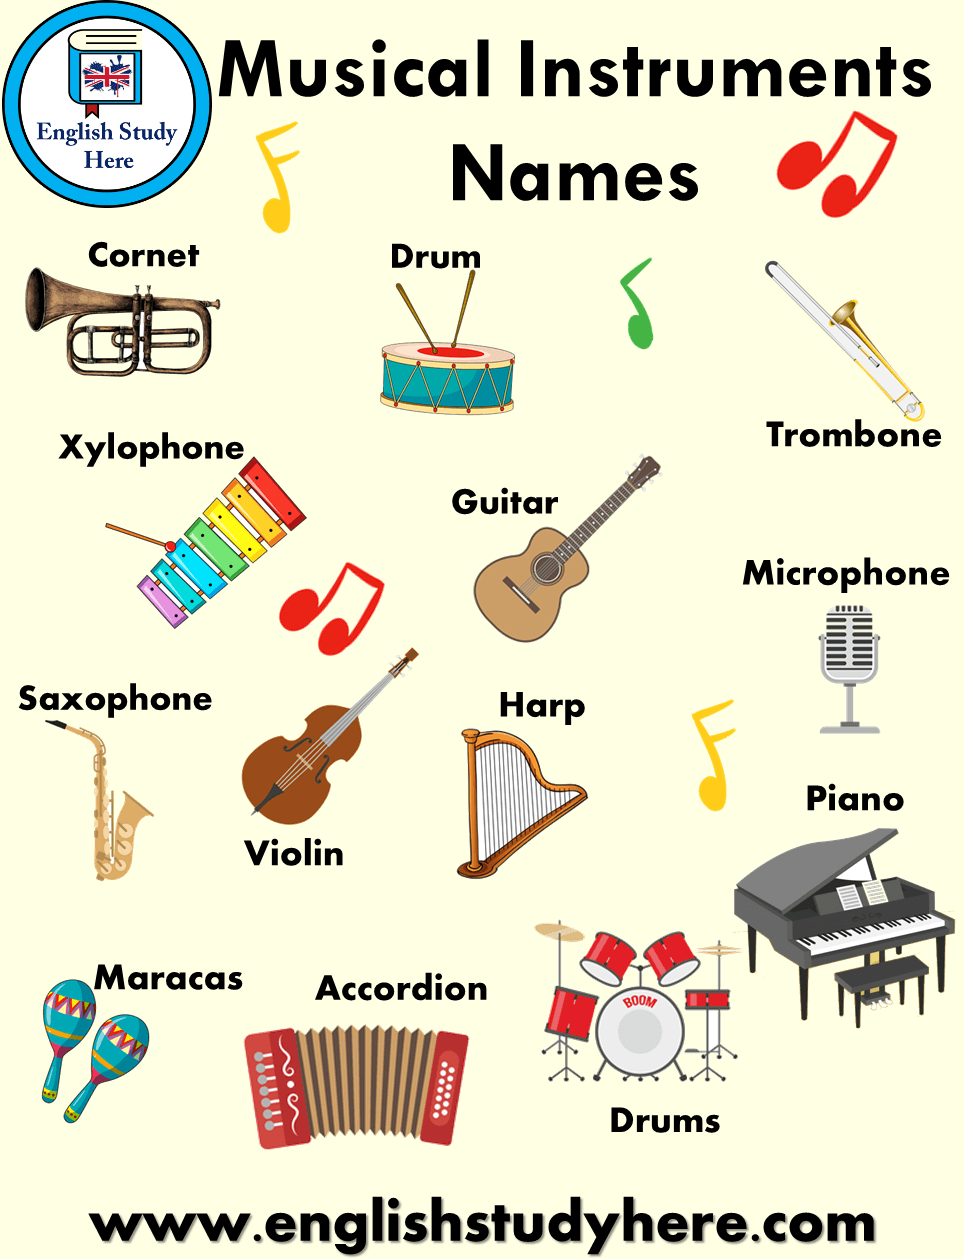 Musical Instruments Names And Pictures English Study Here English Study Music Vocabulary English Lessons For Kids